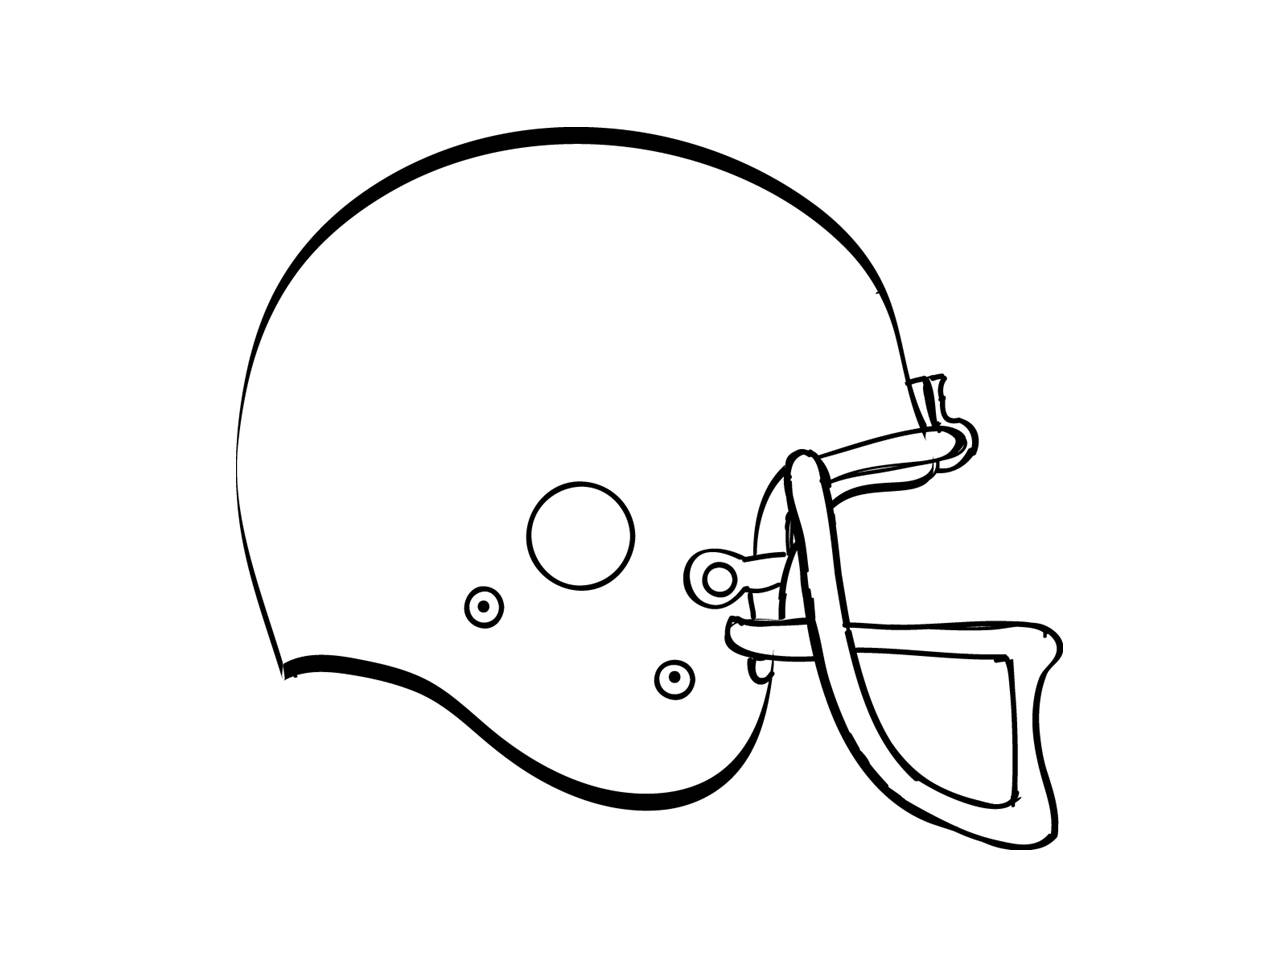 Free How To Draw A Football Helmet Download Free Clip Art